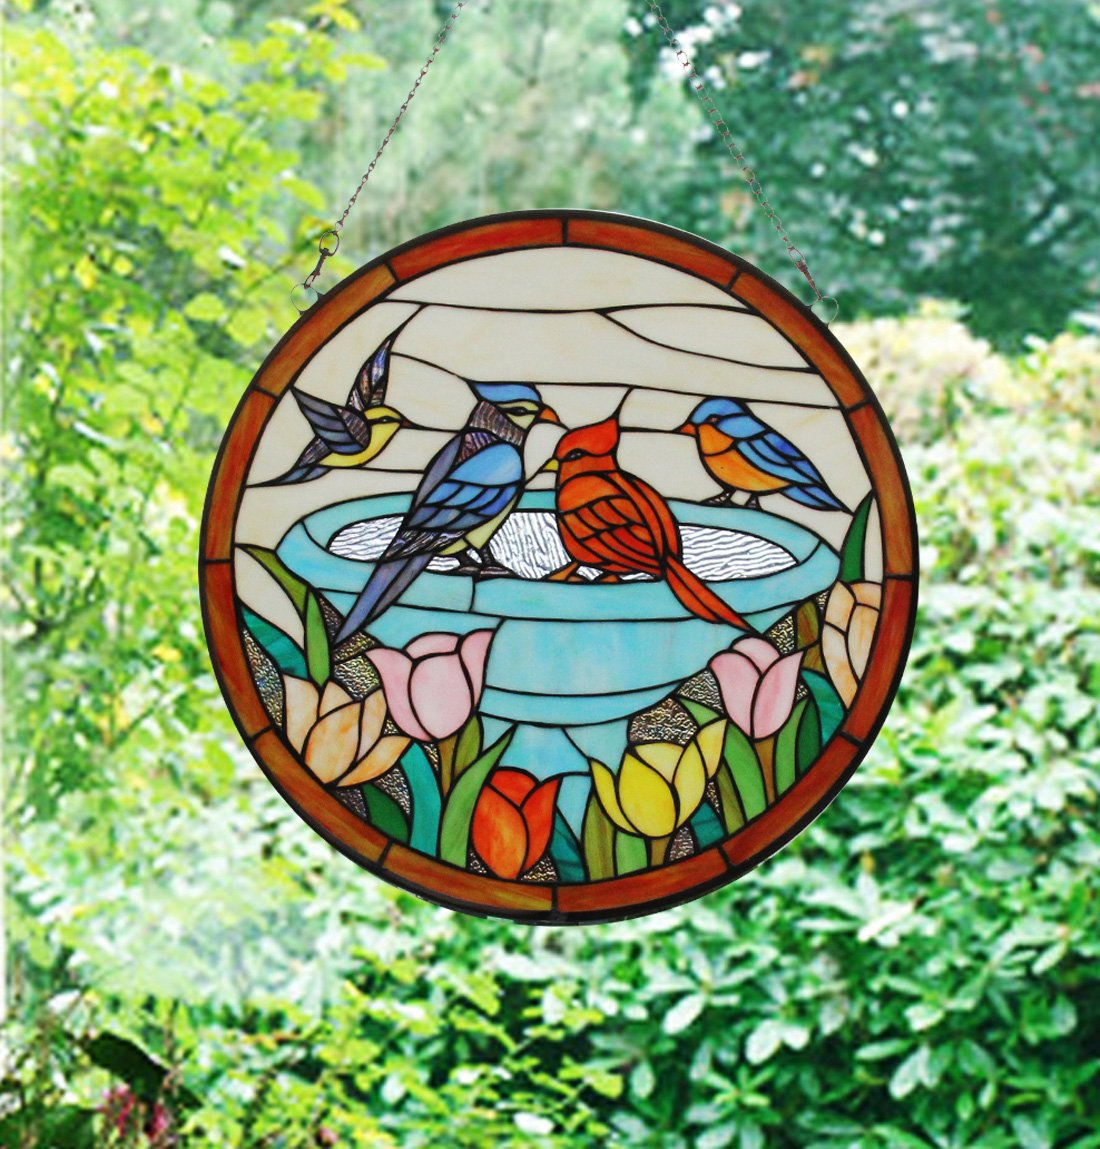 Makenier Vintage Tiffany Style Stained Church Art Glass Parrot and Tulip Round Window Panel Wall Hanging 1